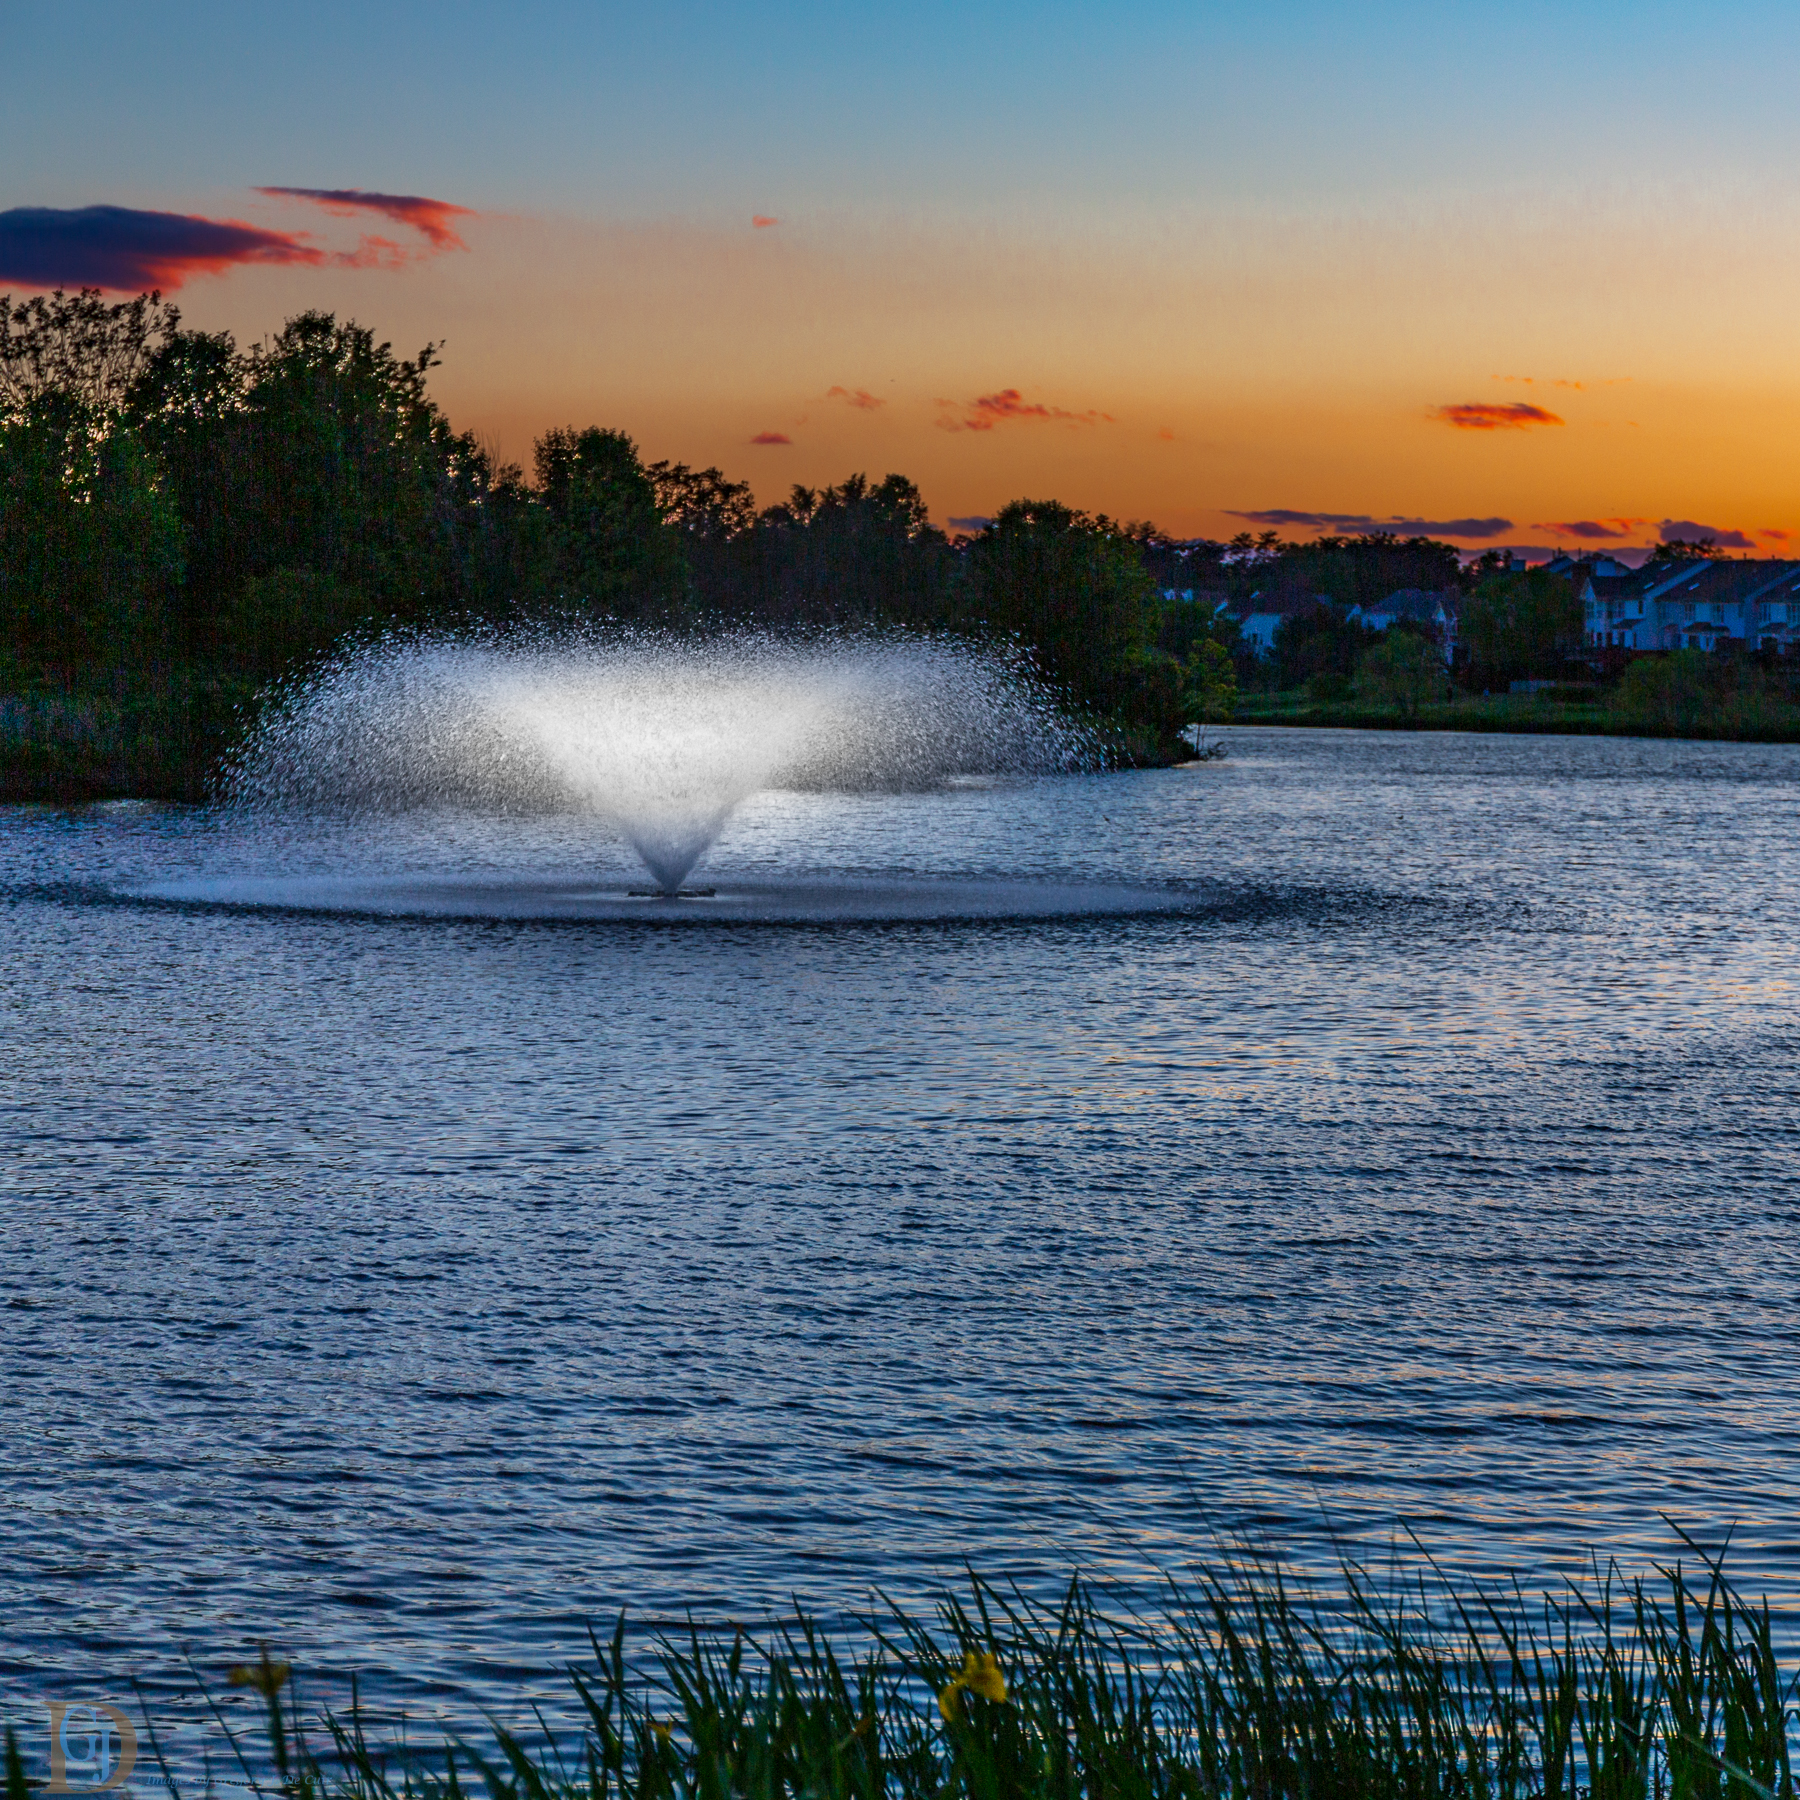 Suburban Lake at sunset